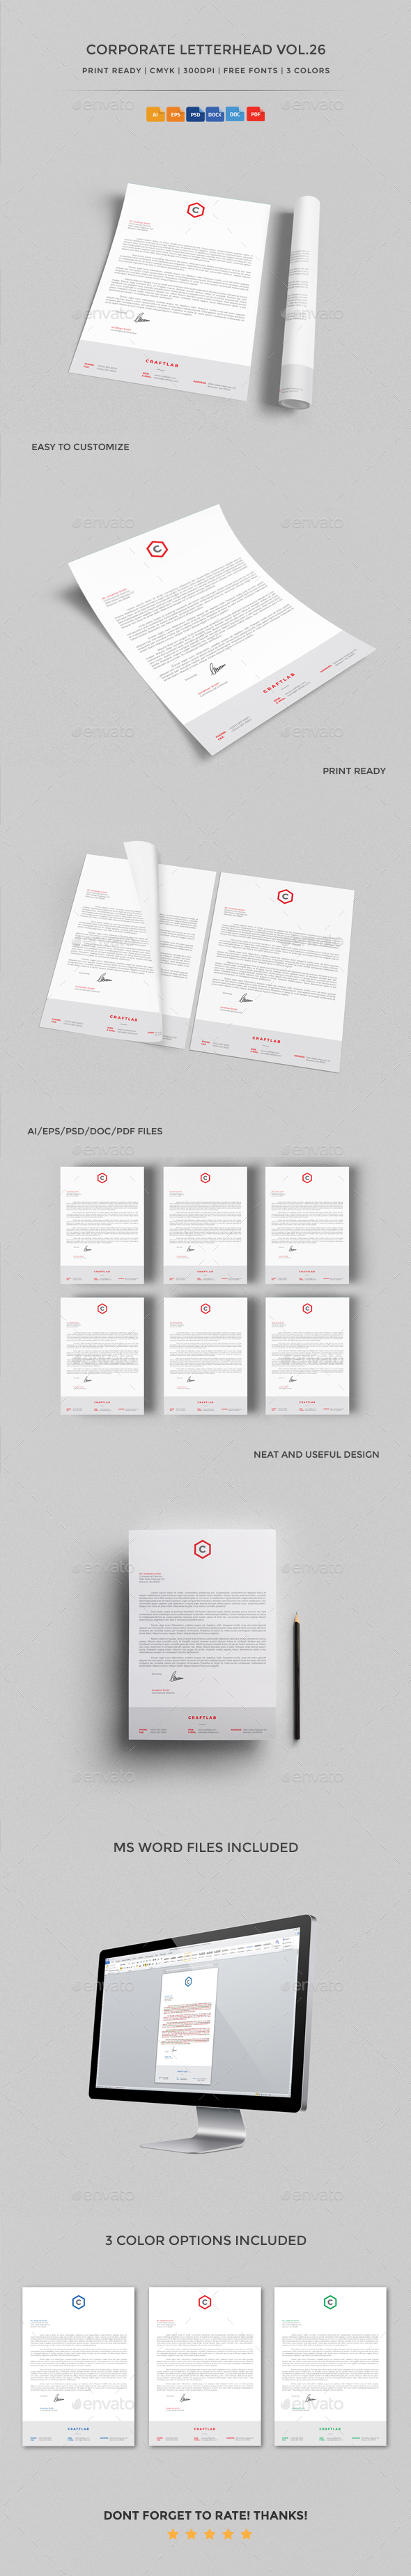 Corporate Letterhead Vol26 With MS Word DOC DOCX